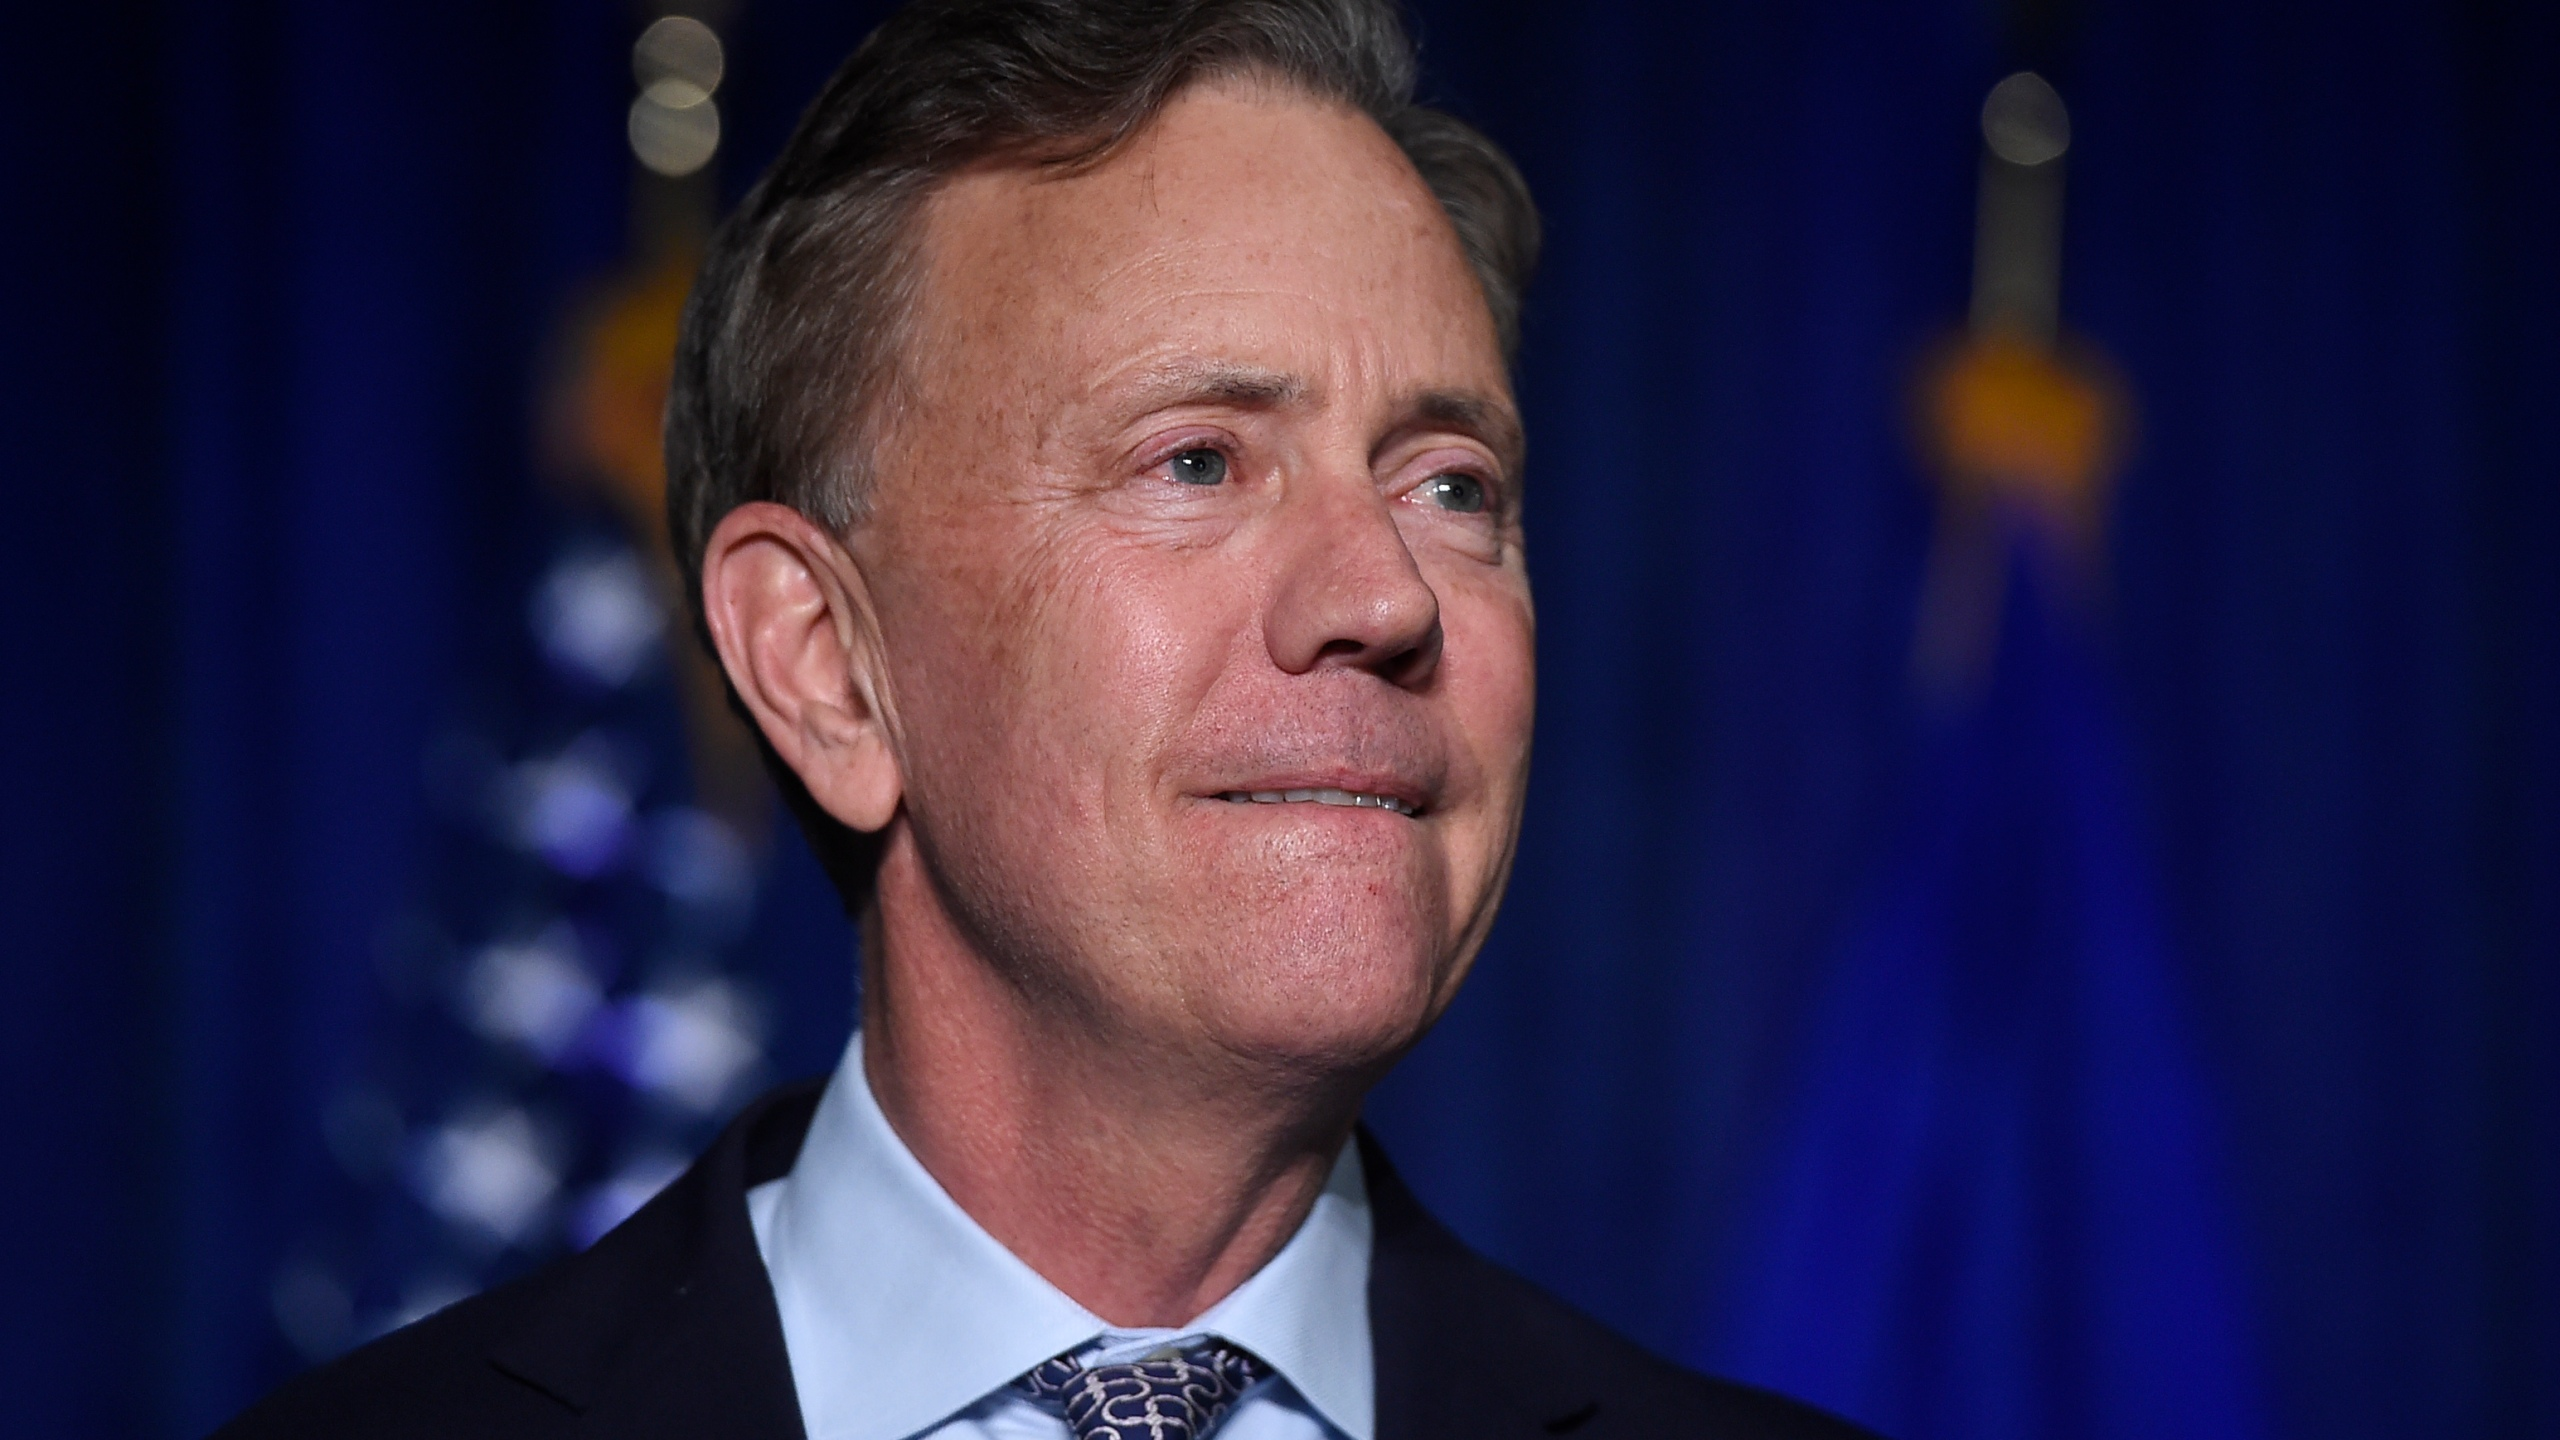 Election_2018_Connecticut_Governor_Lamont_14179-159532.jpg68609821